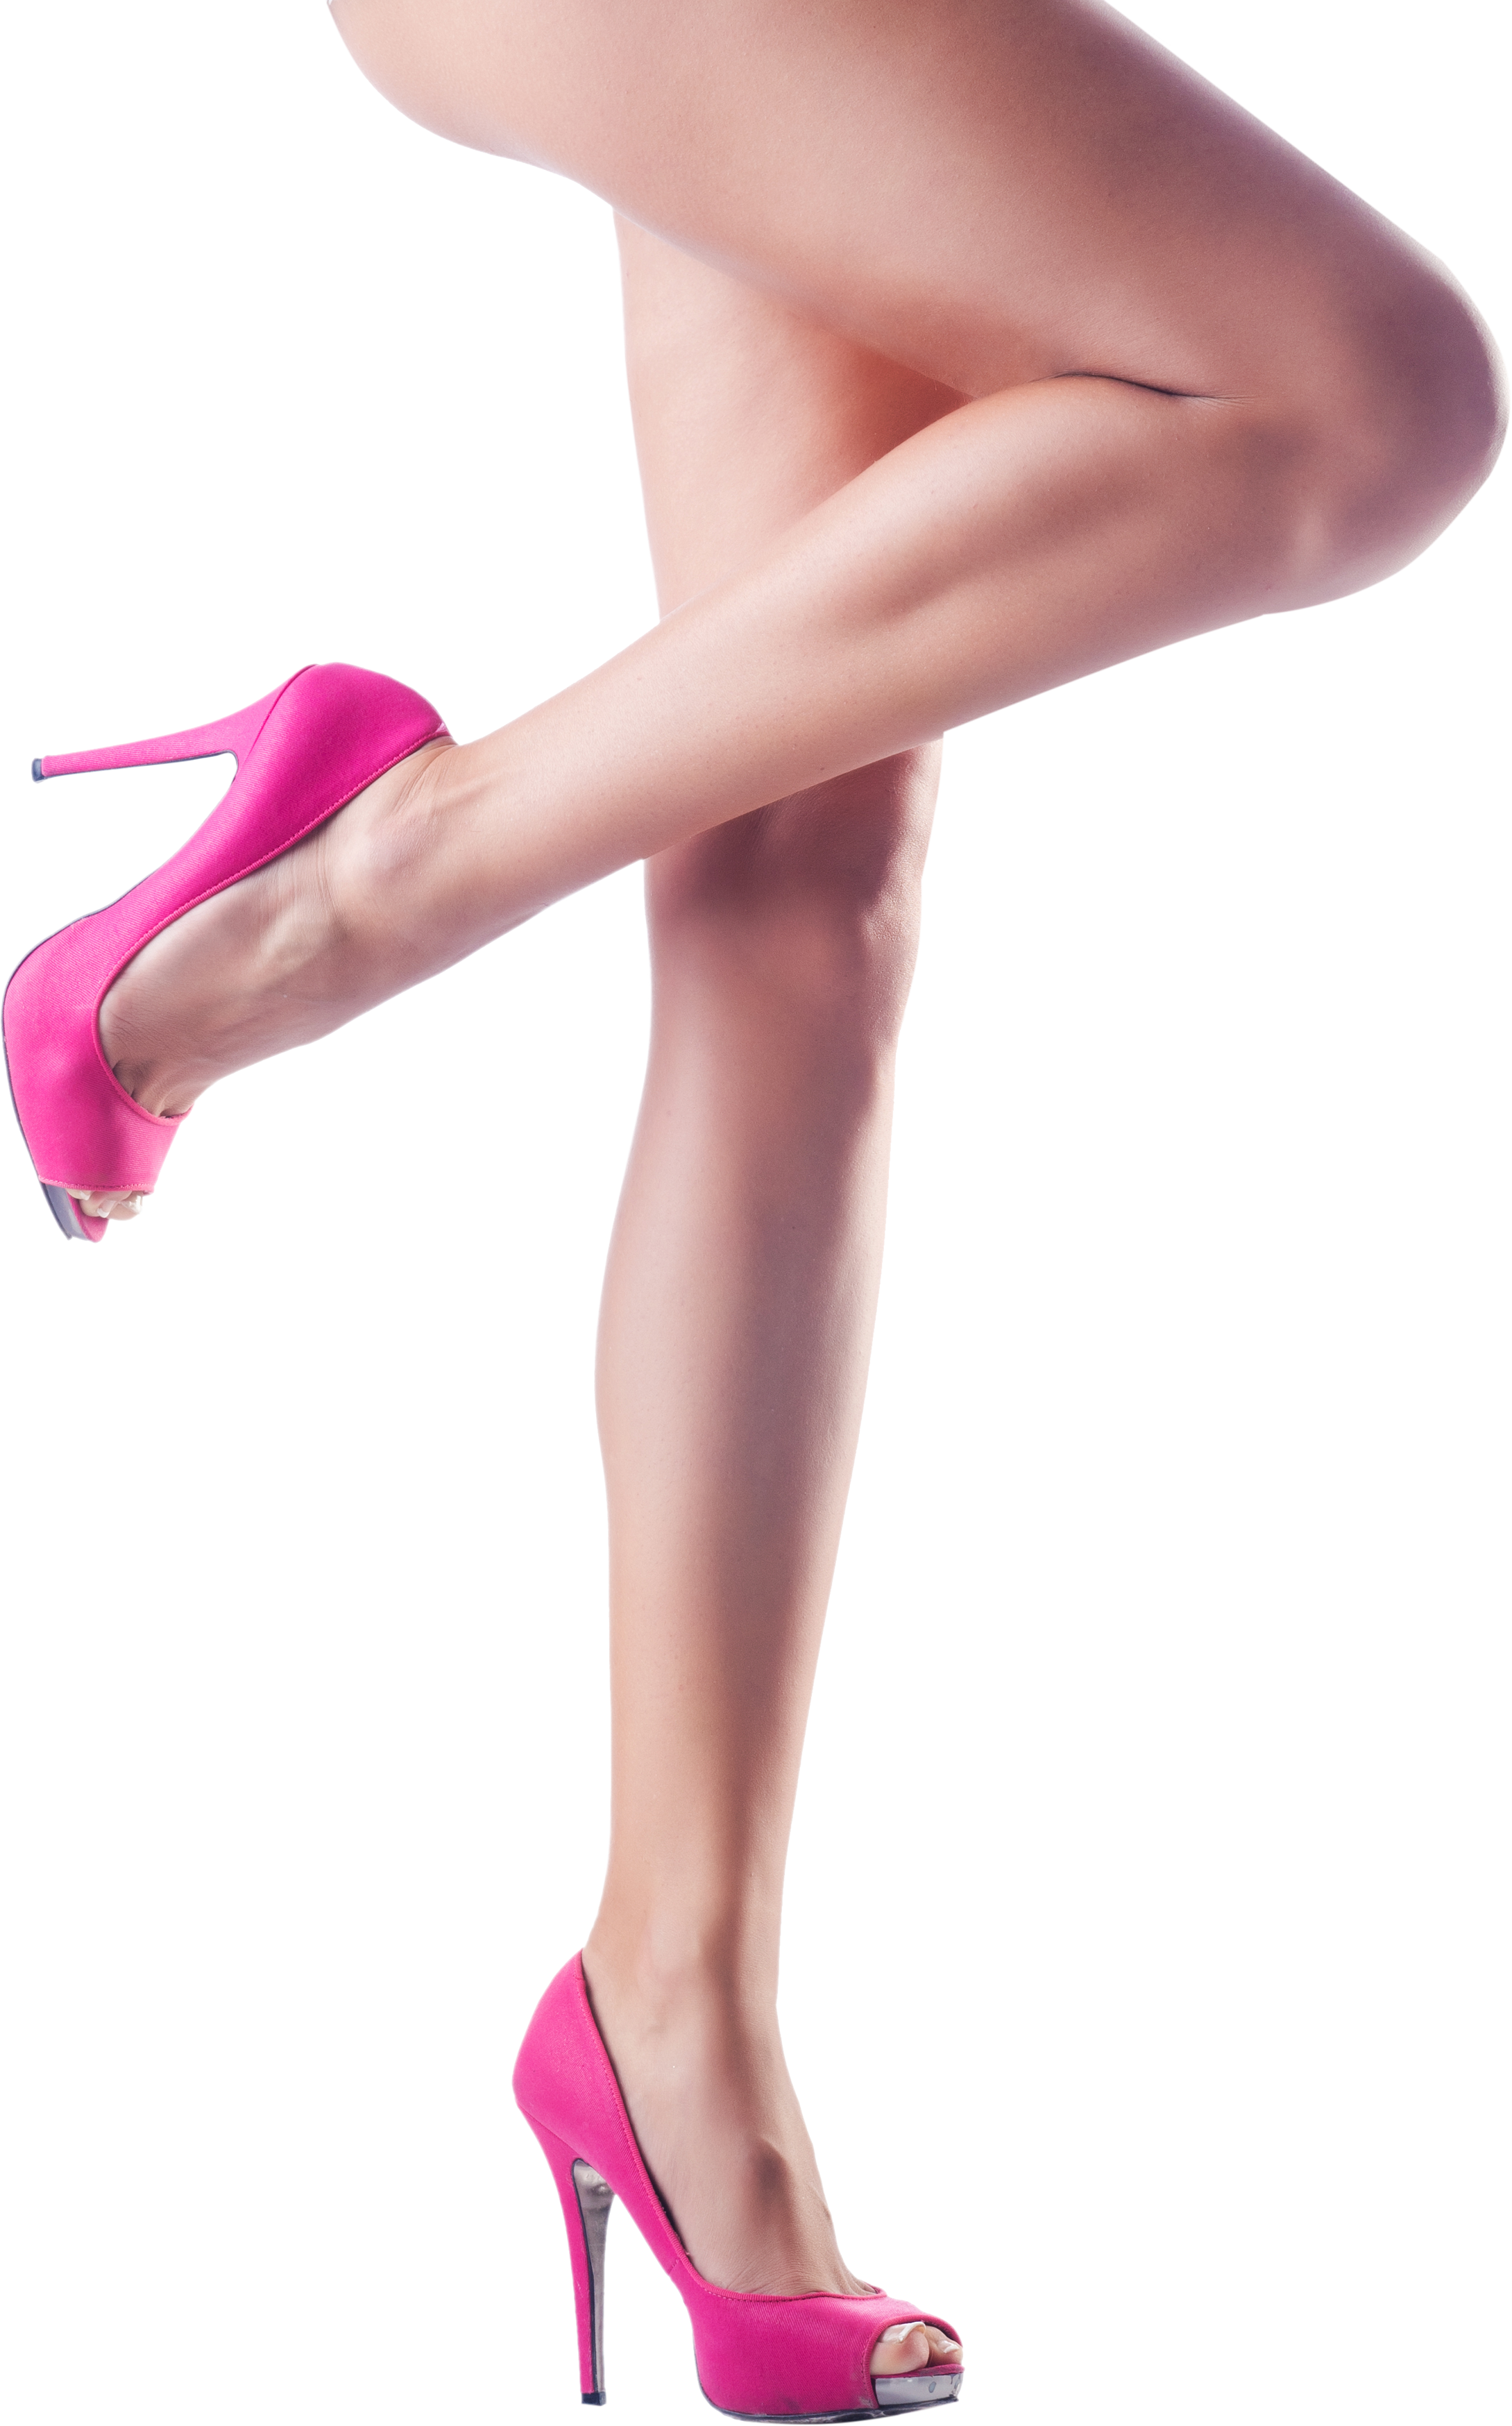 Leg transparent png. Legs images free download